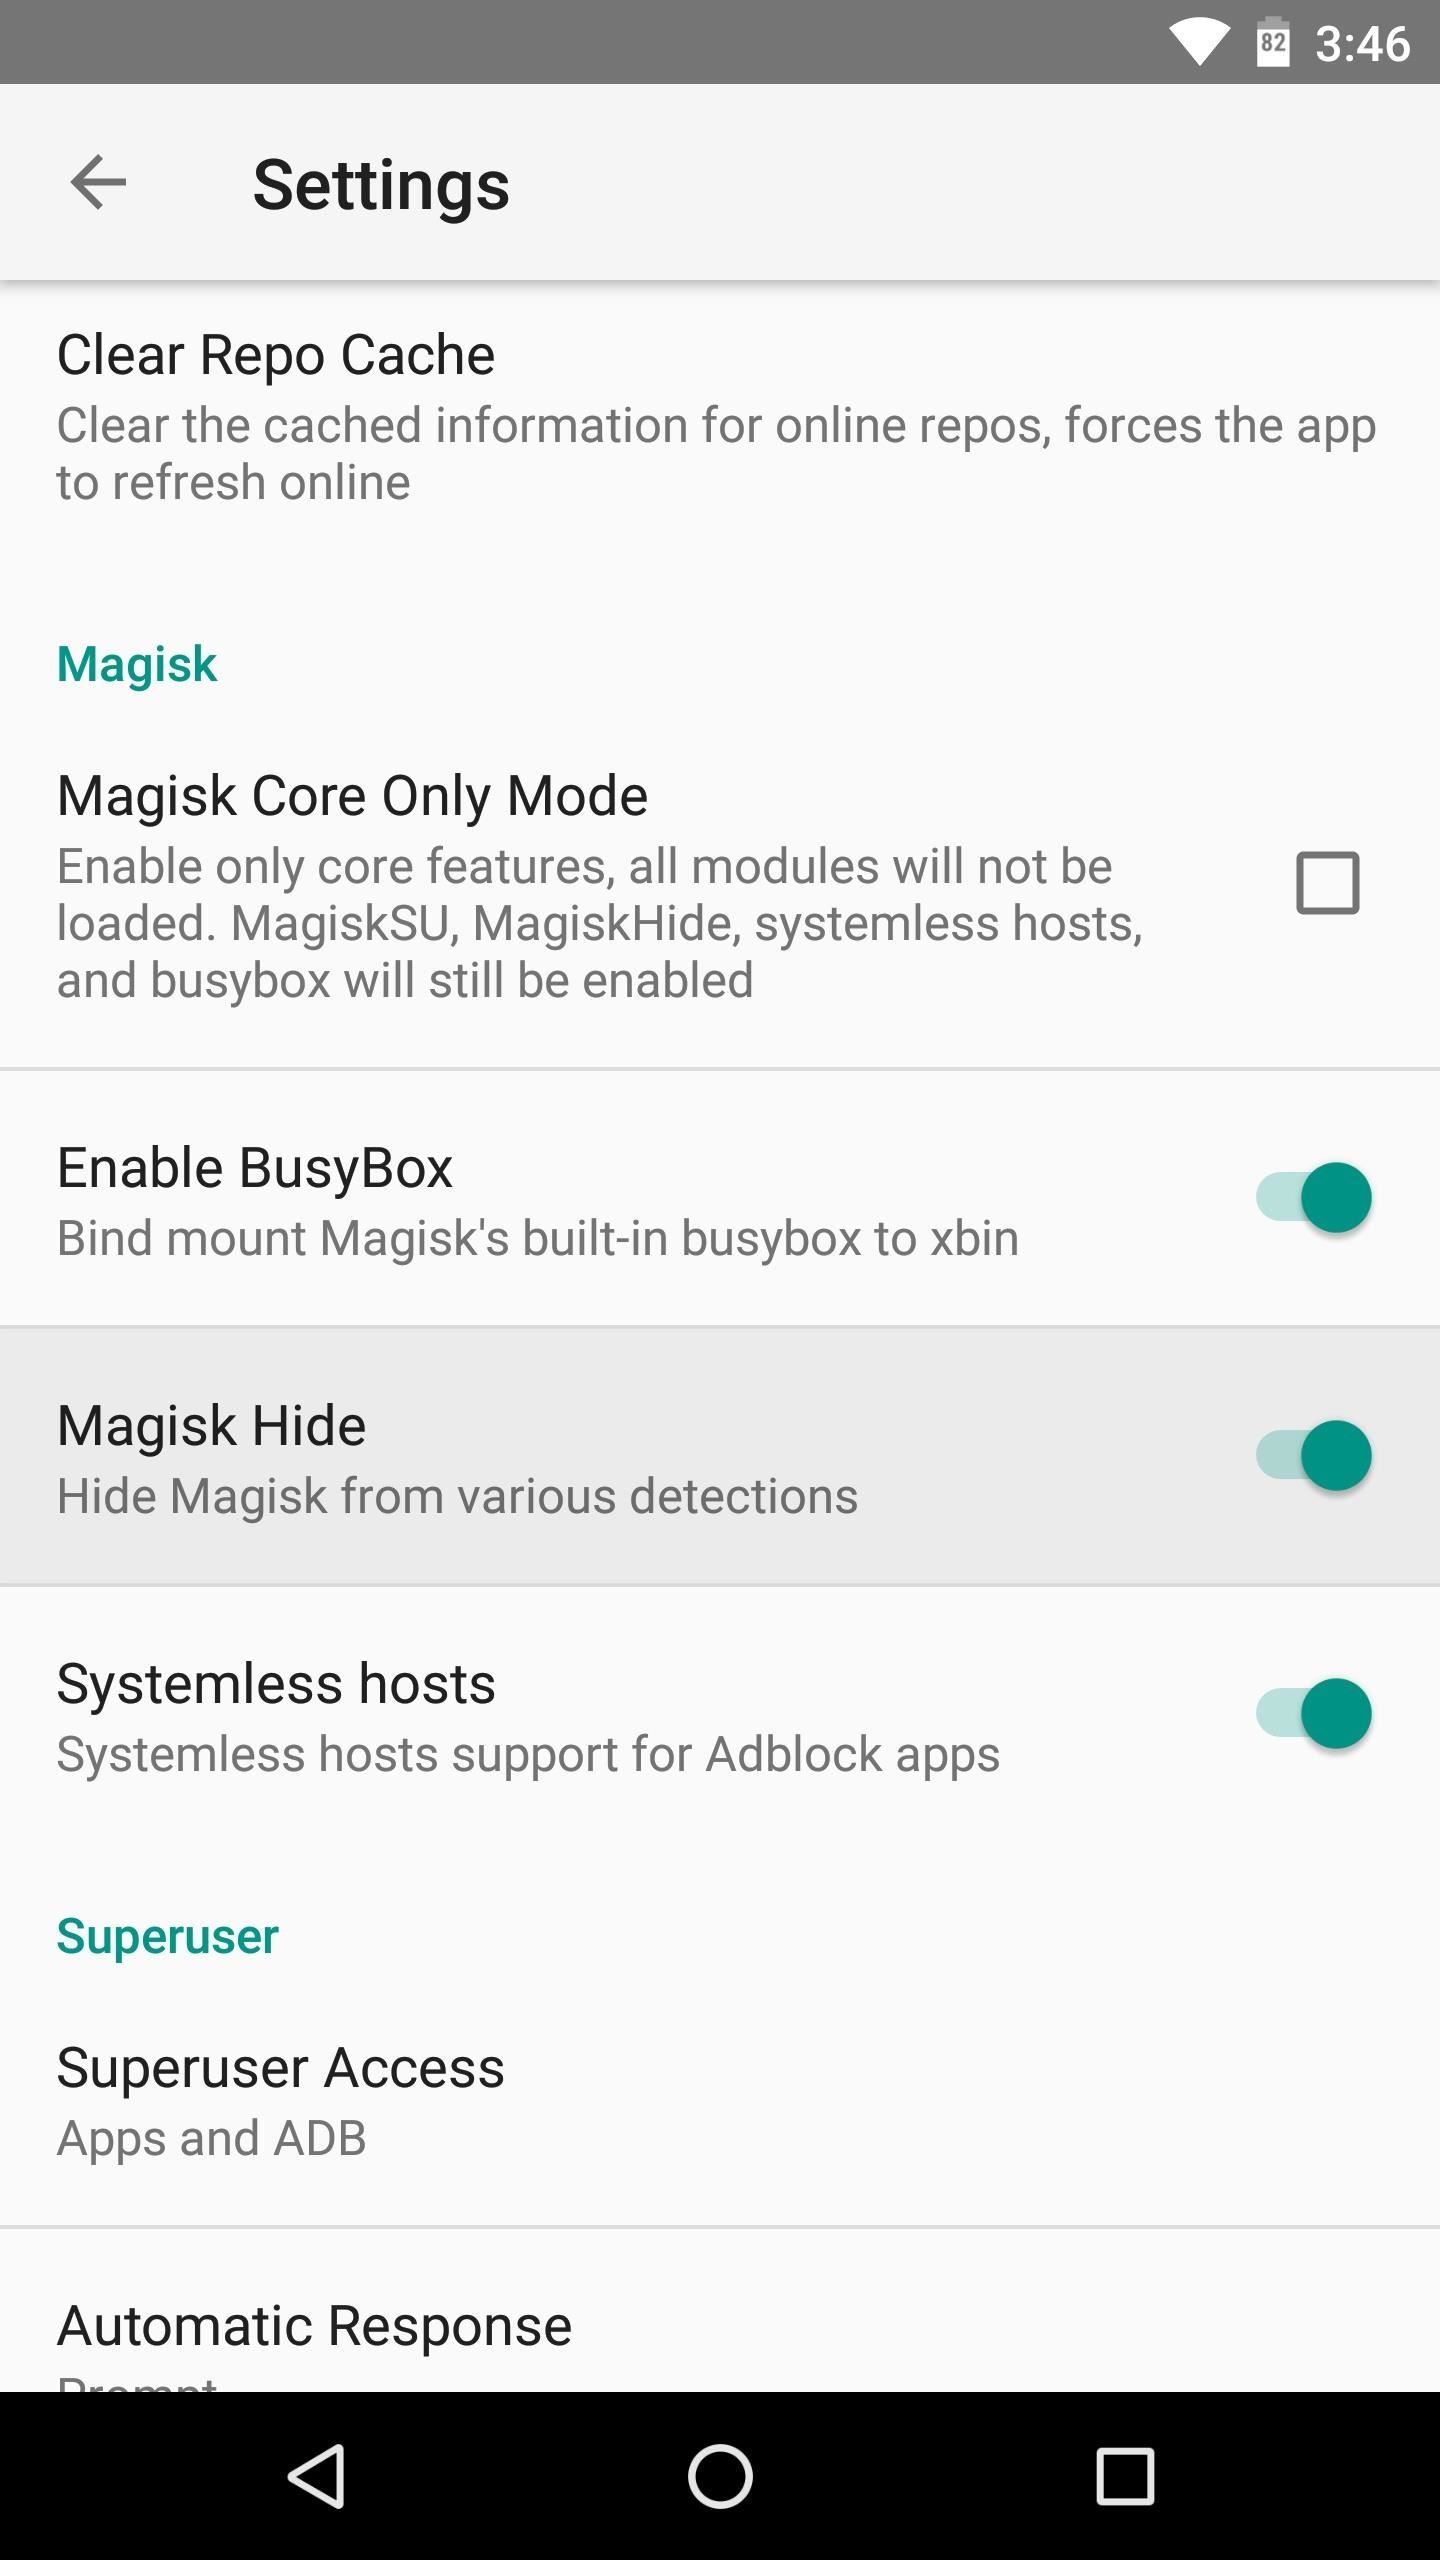 Magisk 101: How to Fix SafetyNet 'CTS Profile Mismatch' Errors